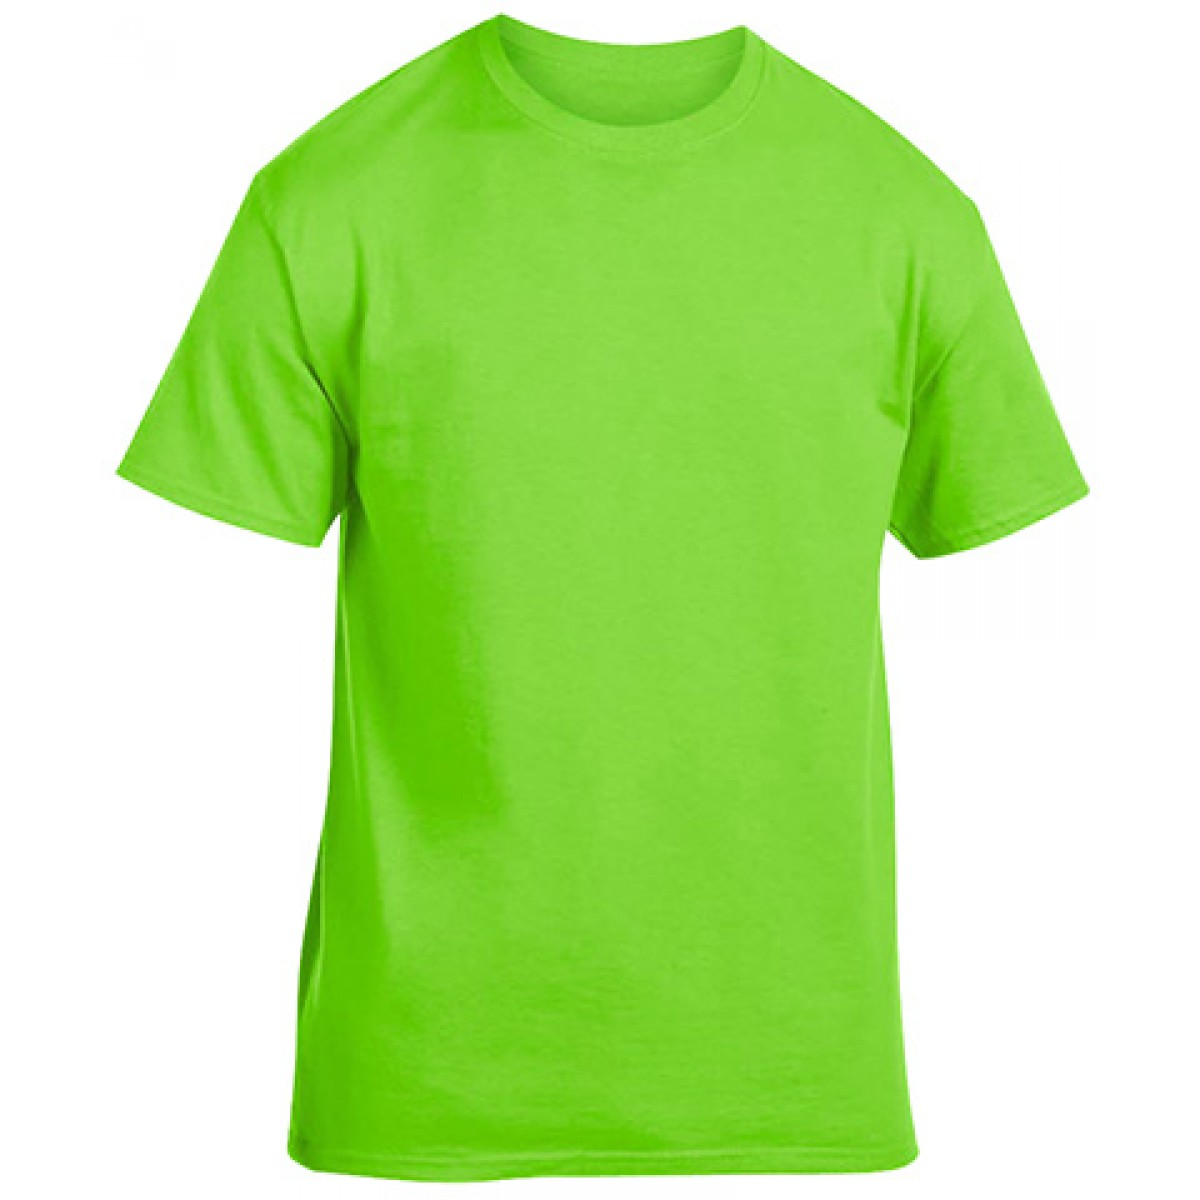 Soft 100% Cotton T-Shirt-Neon Green-S